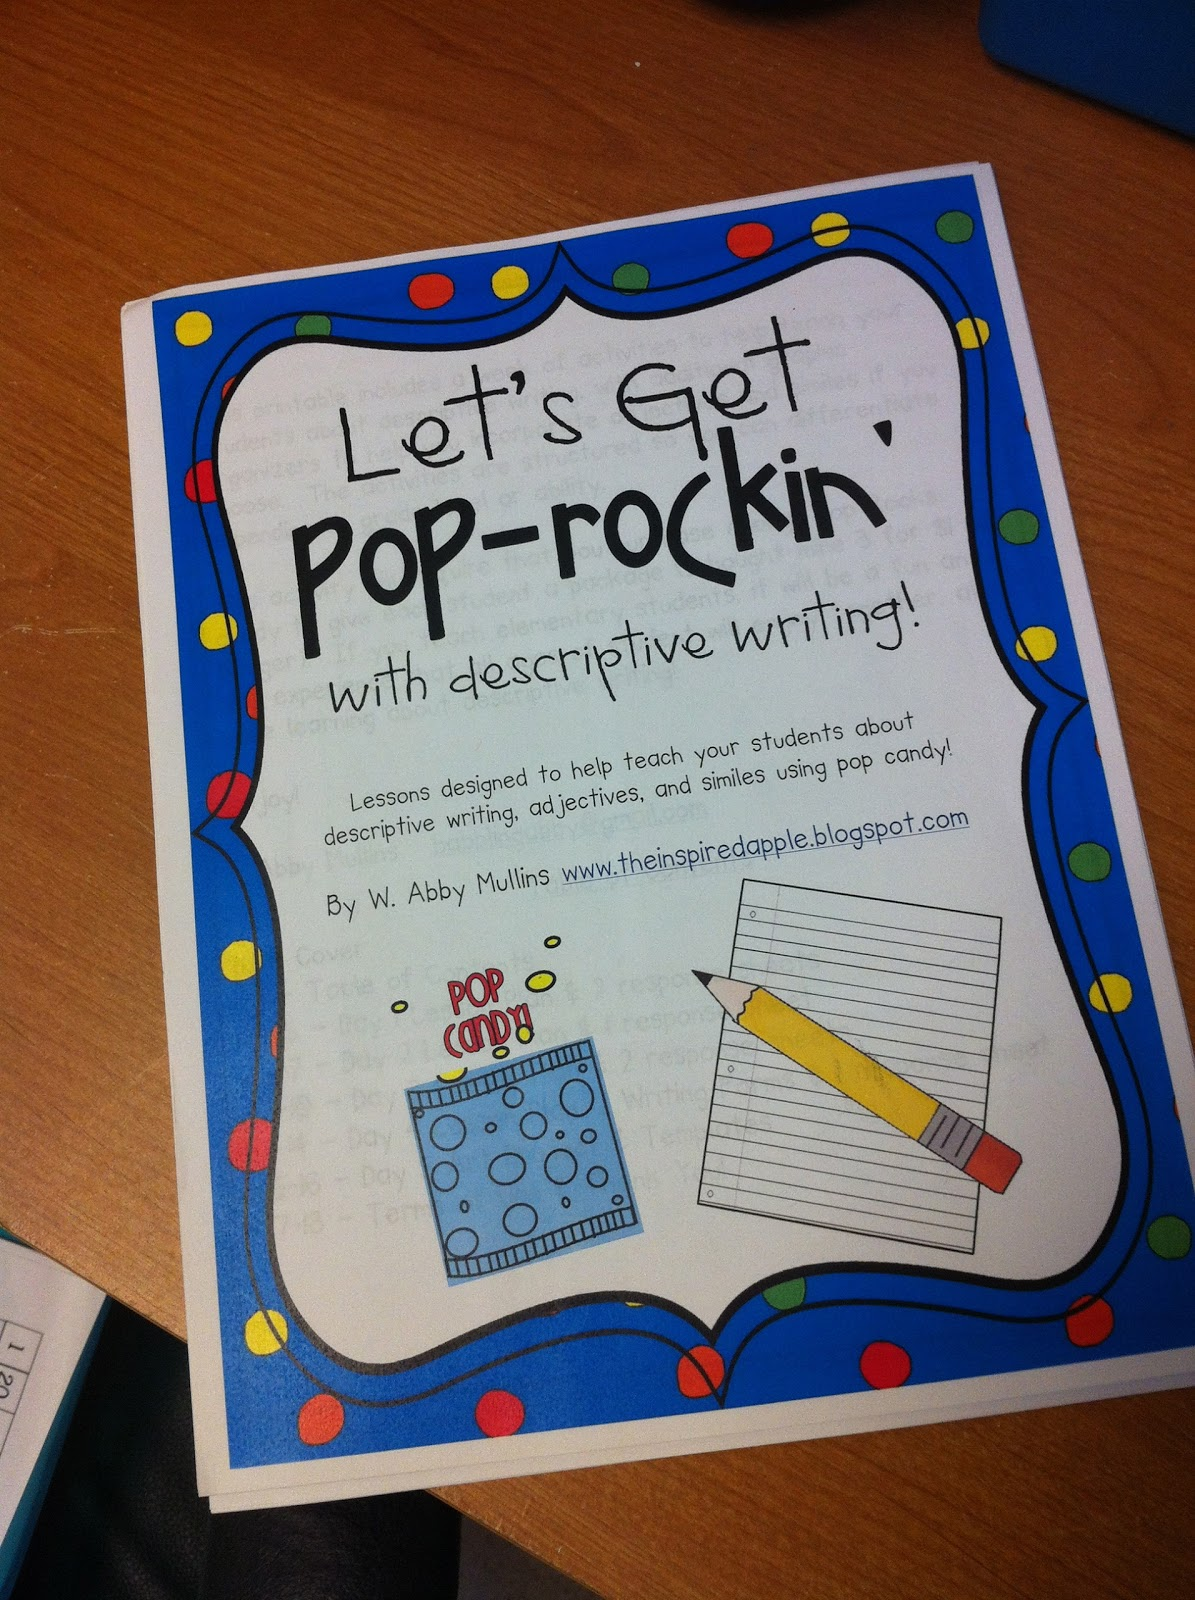 first grader at last pop rockin describing words pop rockin describing words